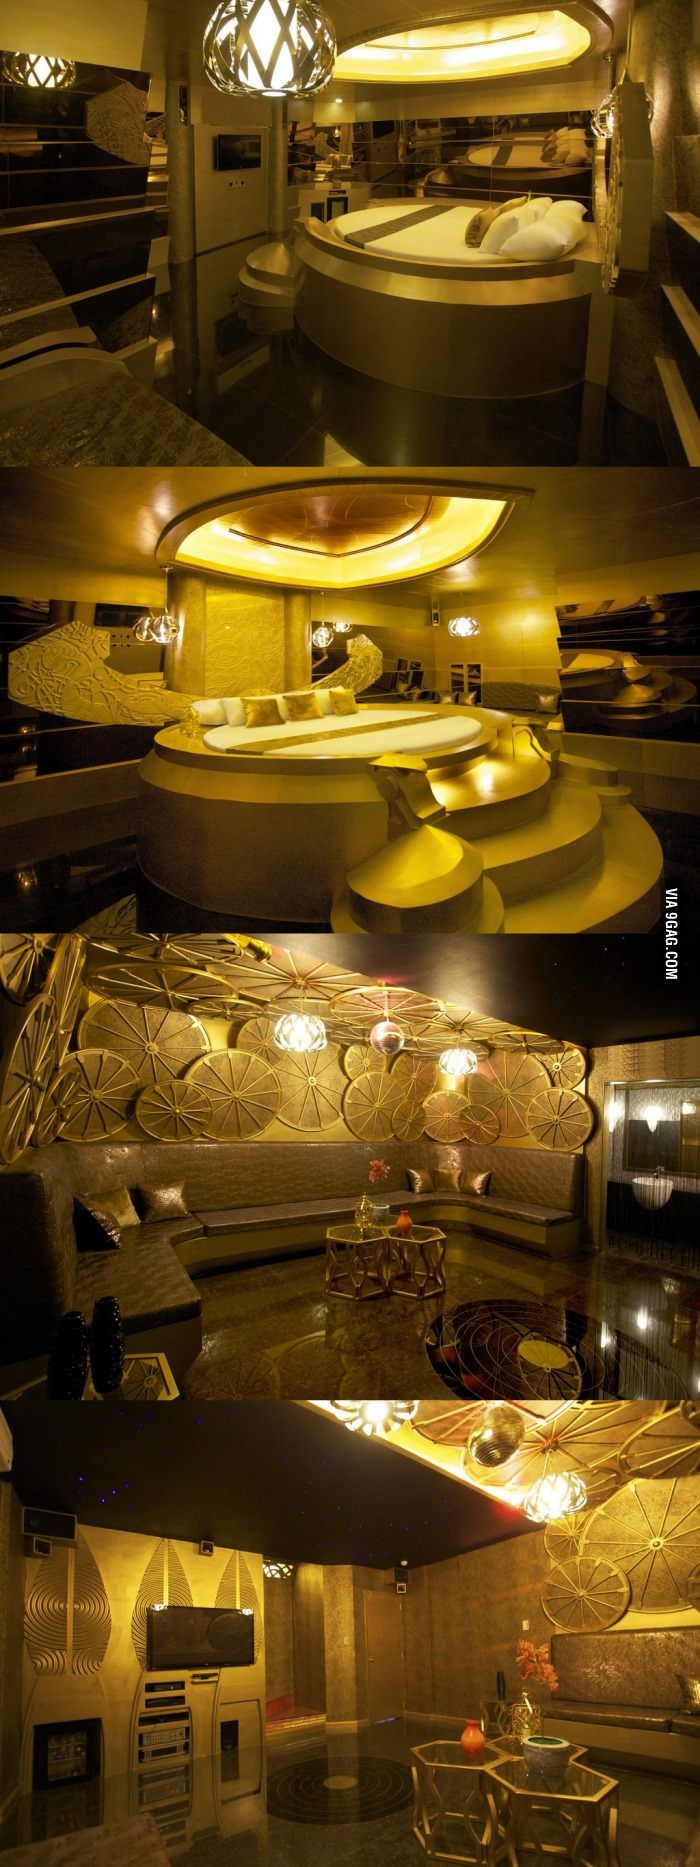 Asgard Themed Hotel Room in Manila, Philippines -- I can already hear Stark's prank calls to room service! :D